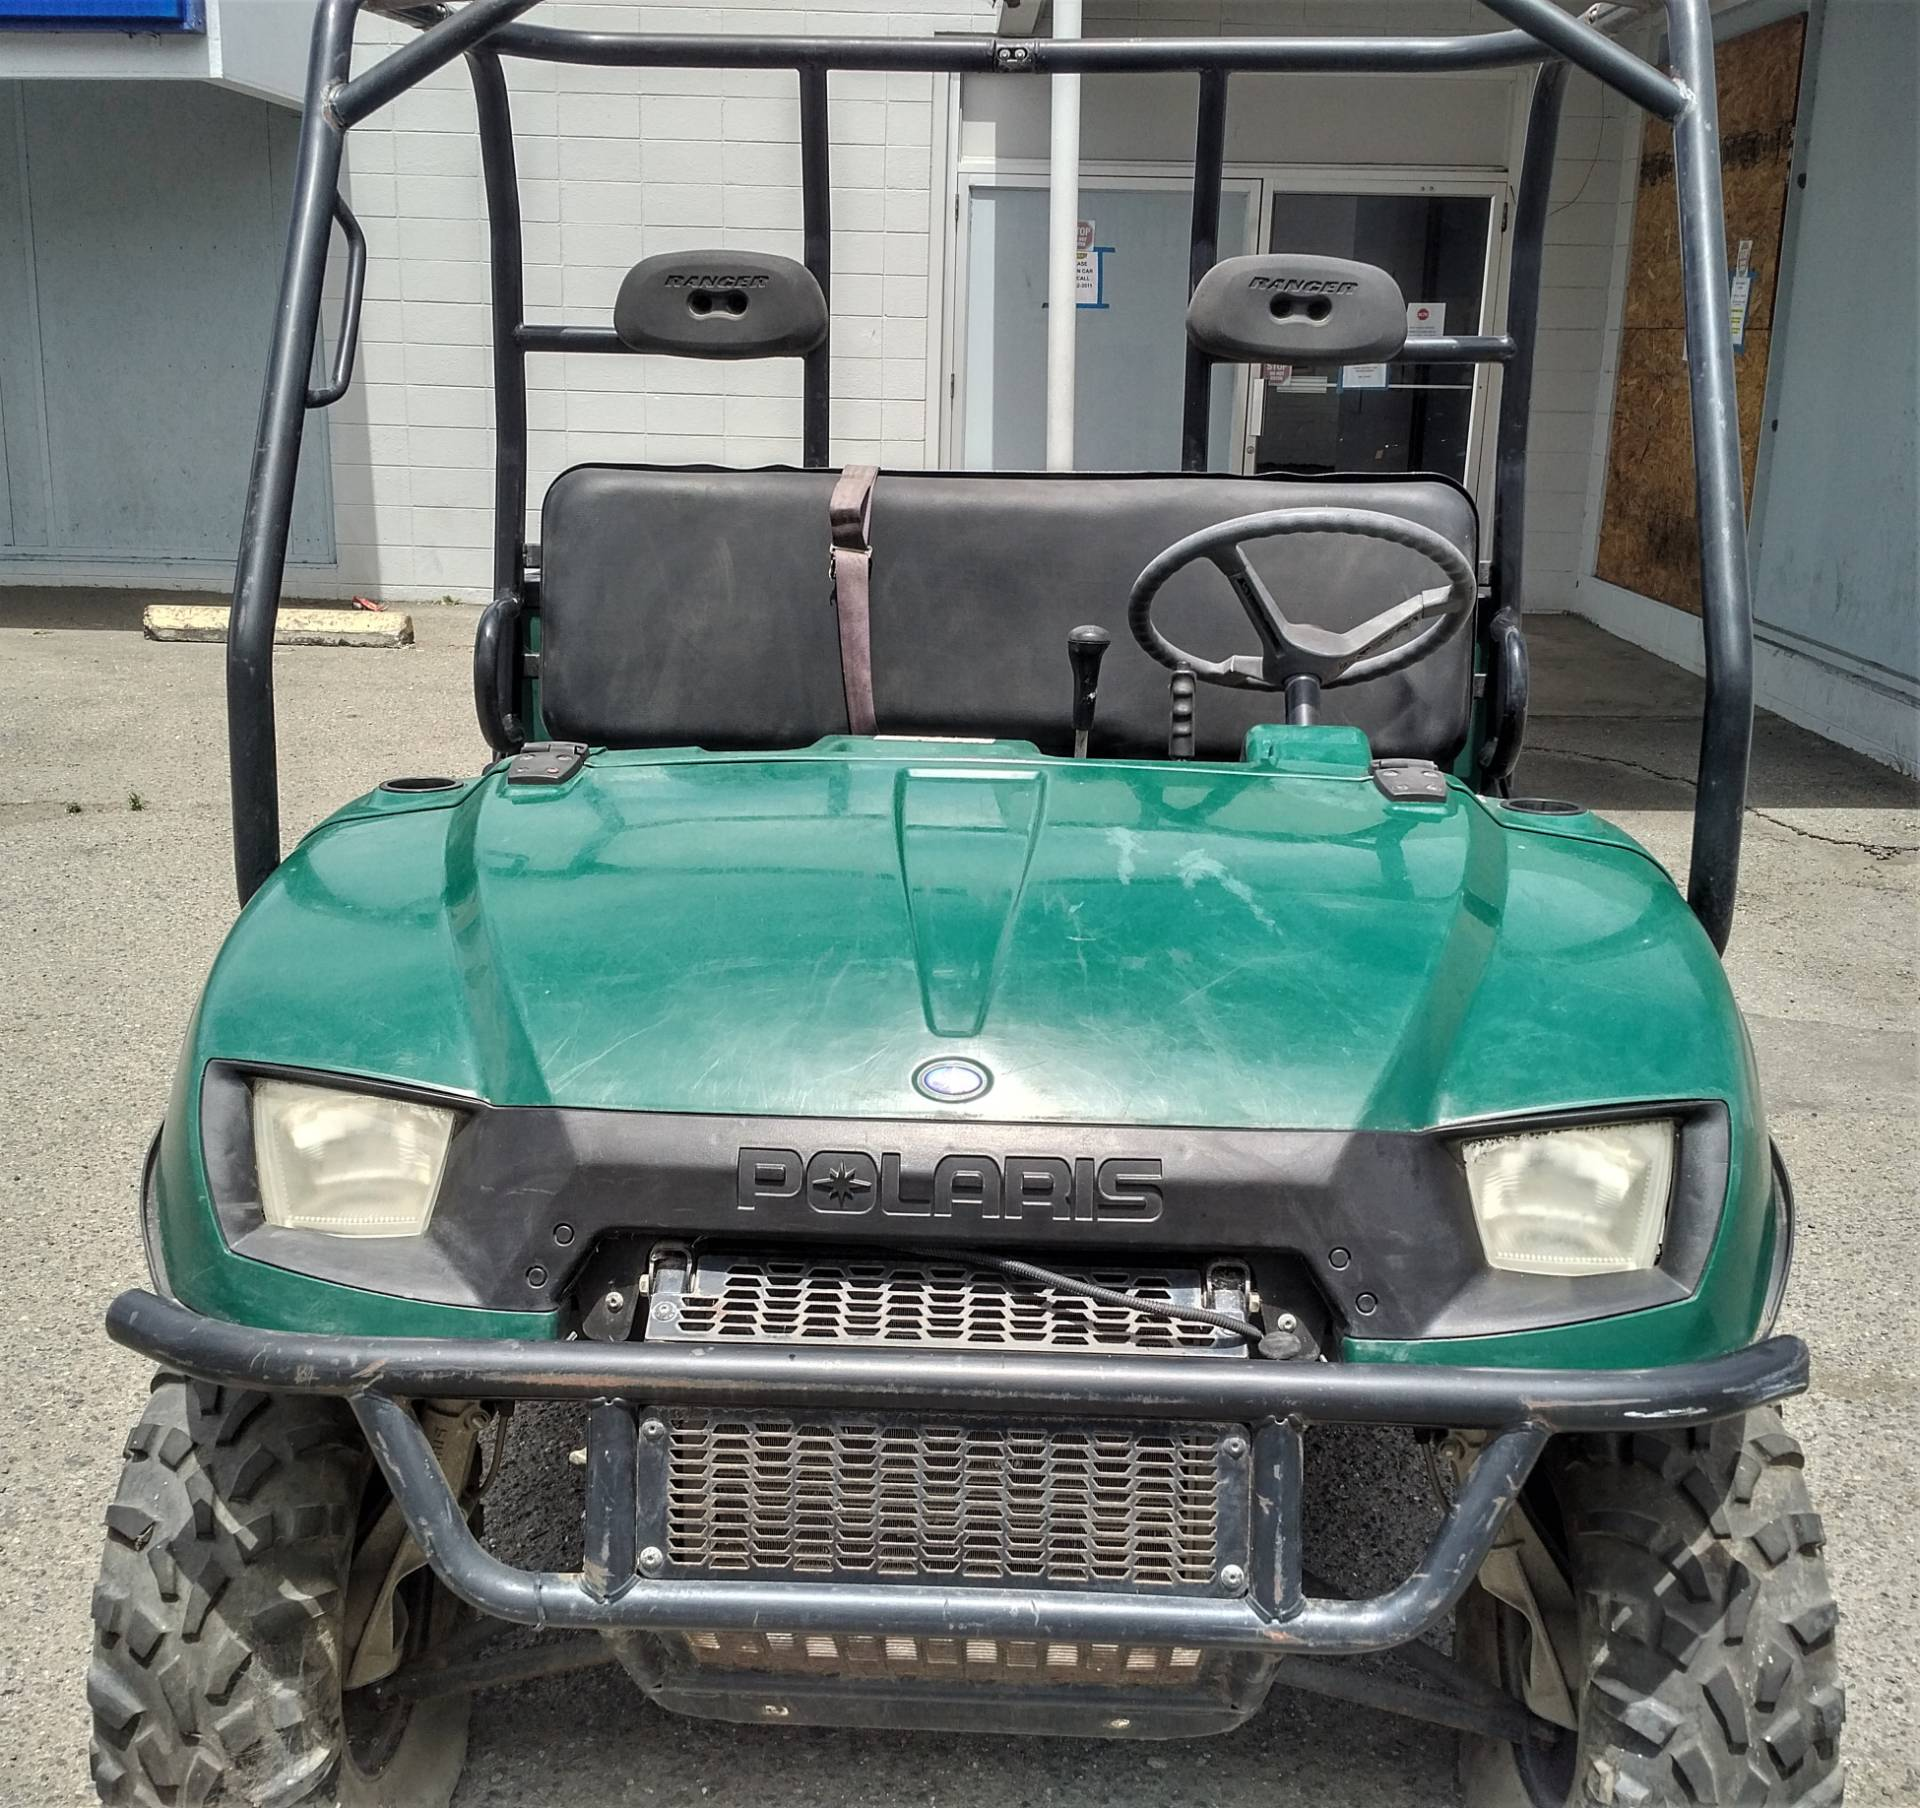 2009 Polaris Ranger™ 2x4 in Salinas, California - Photo 5